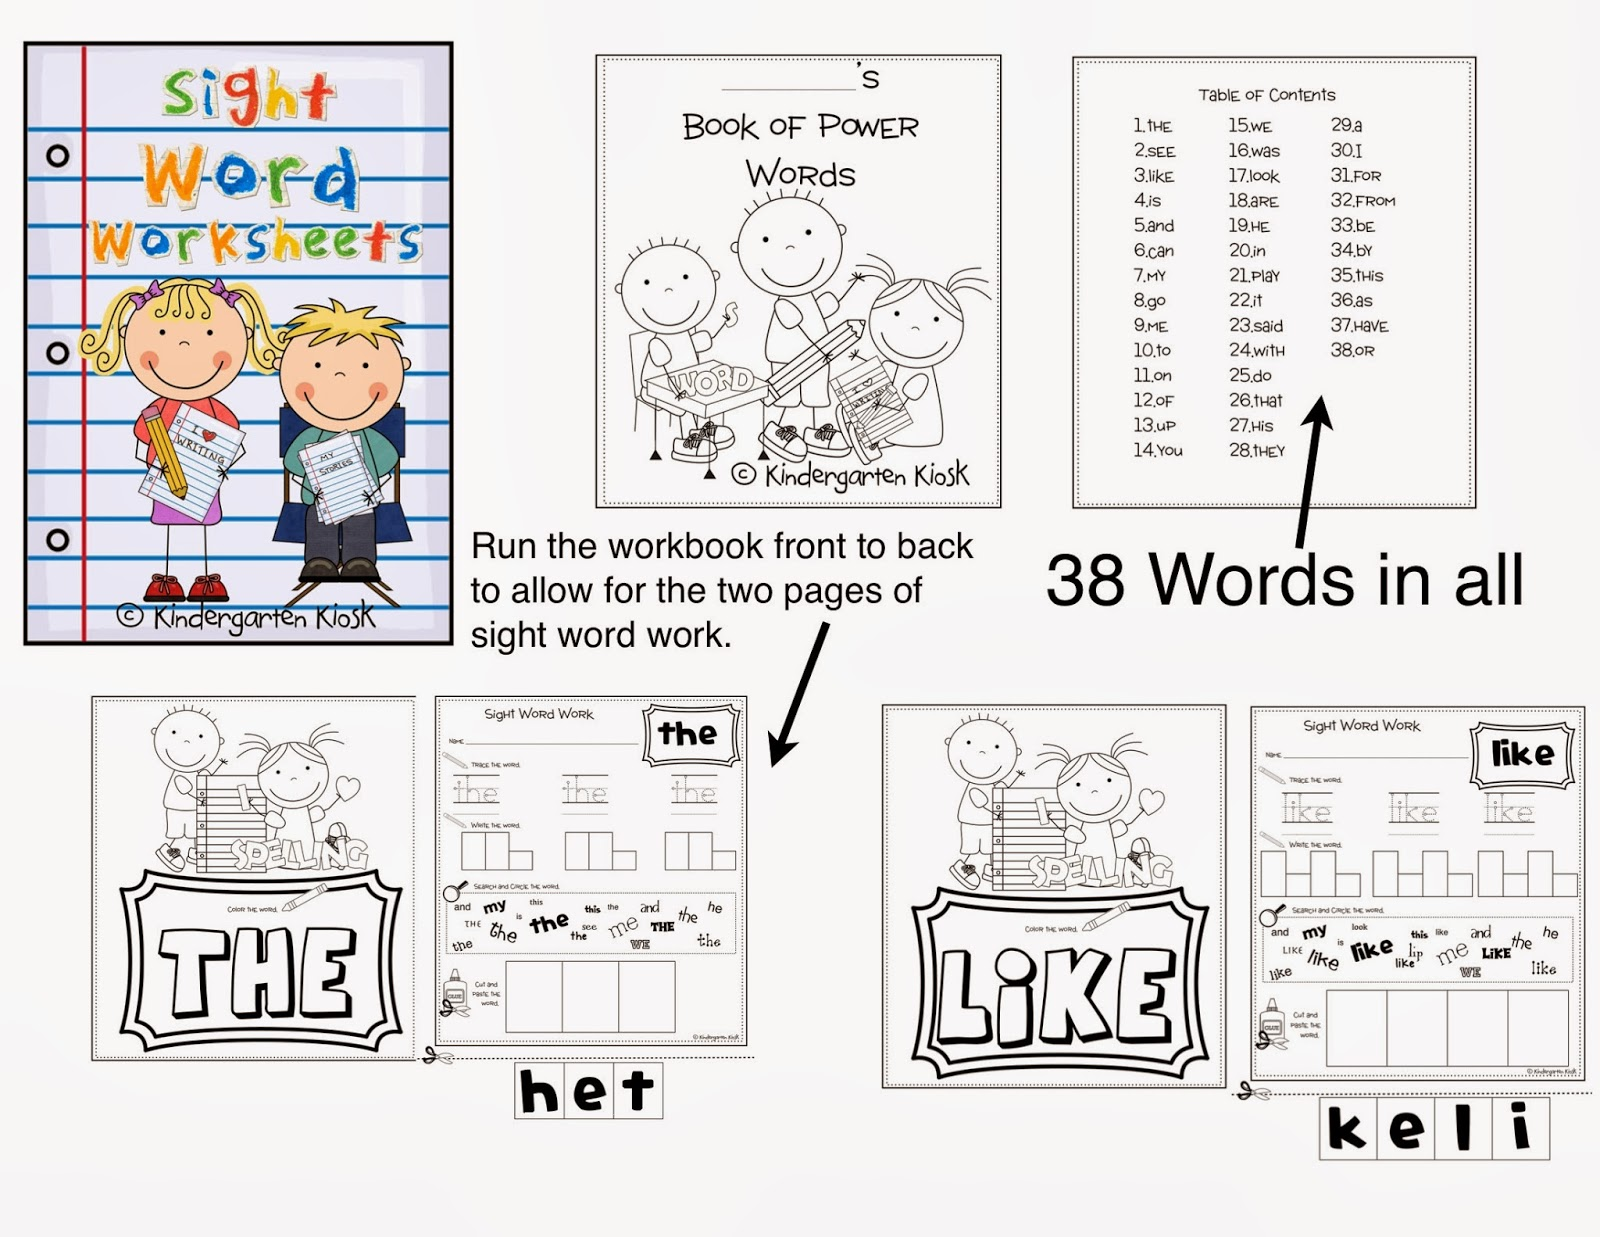 Kindergarten Kiosk Sight Word Worksheets Or Workbook Multi Task Style